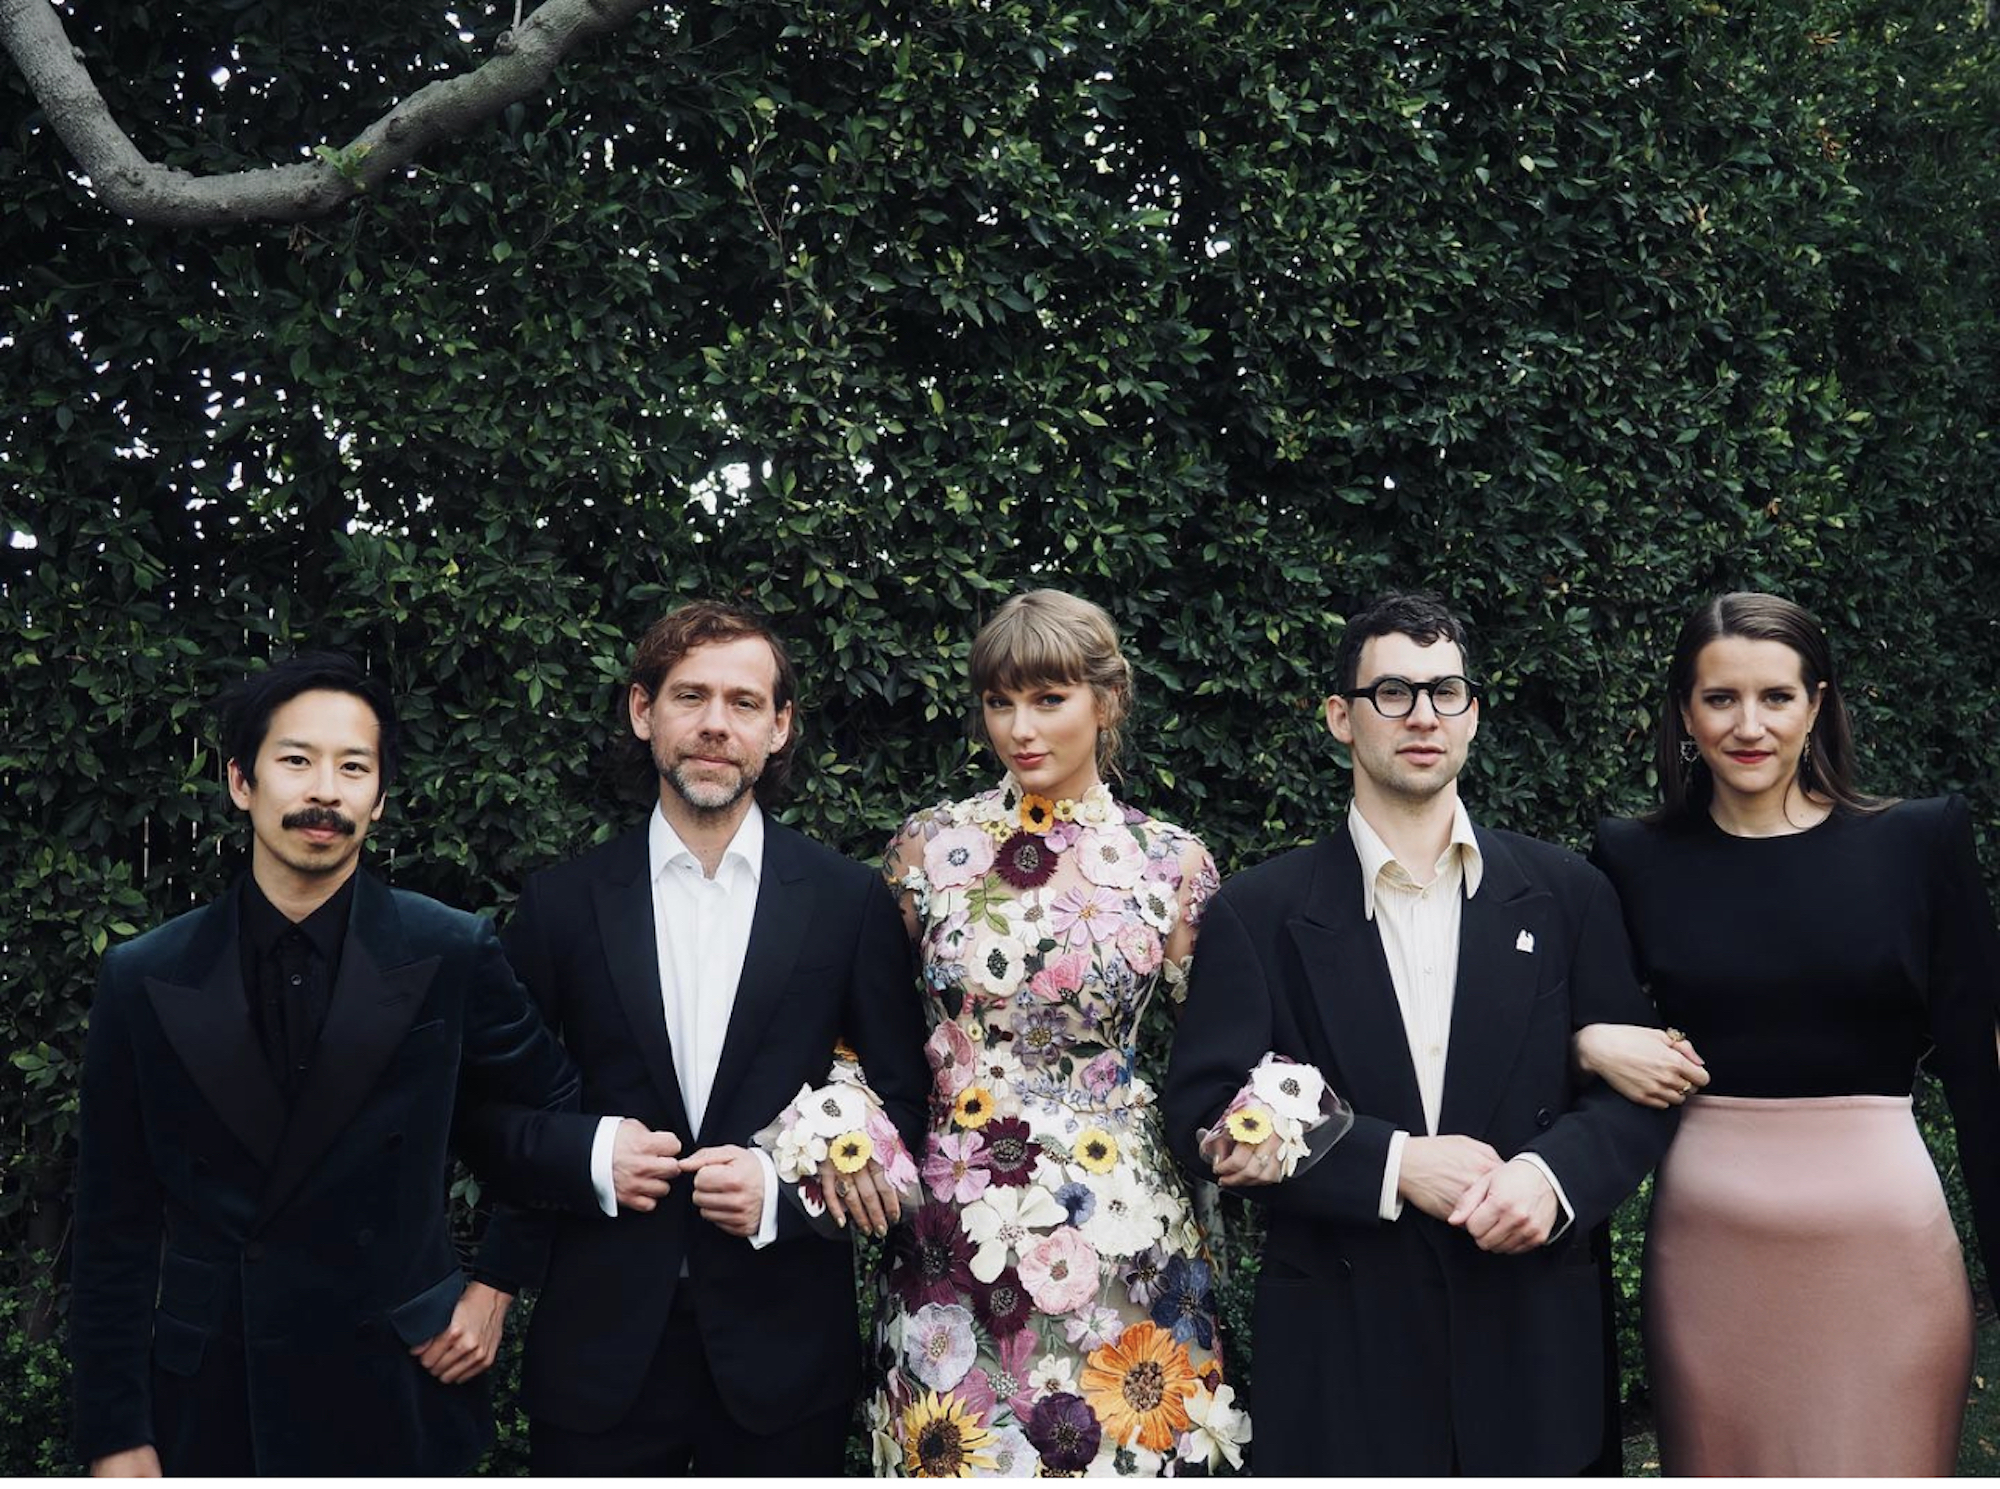 Taylor Swift with team Grammys 2021